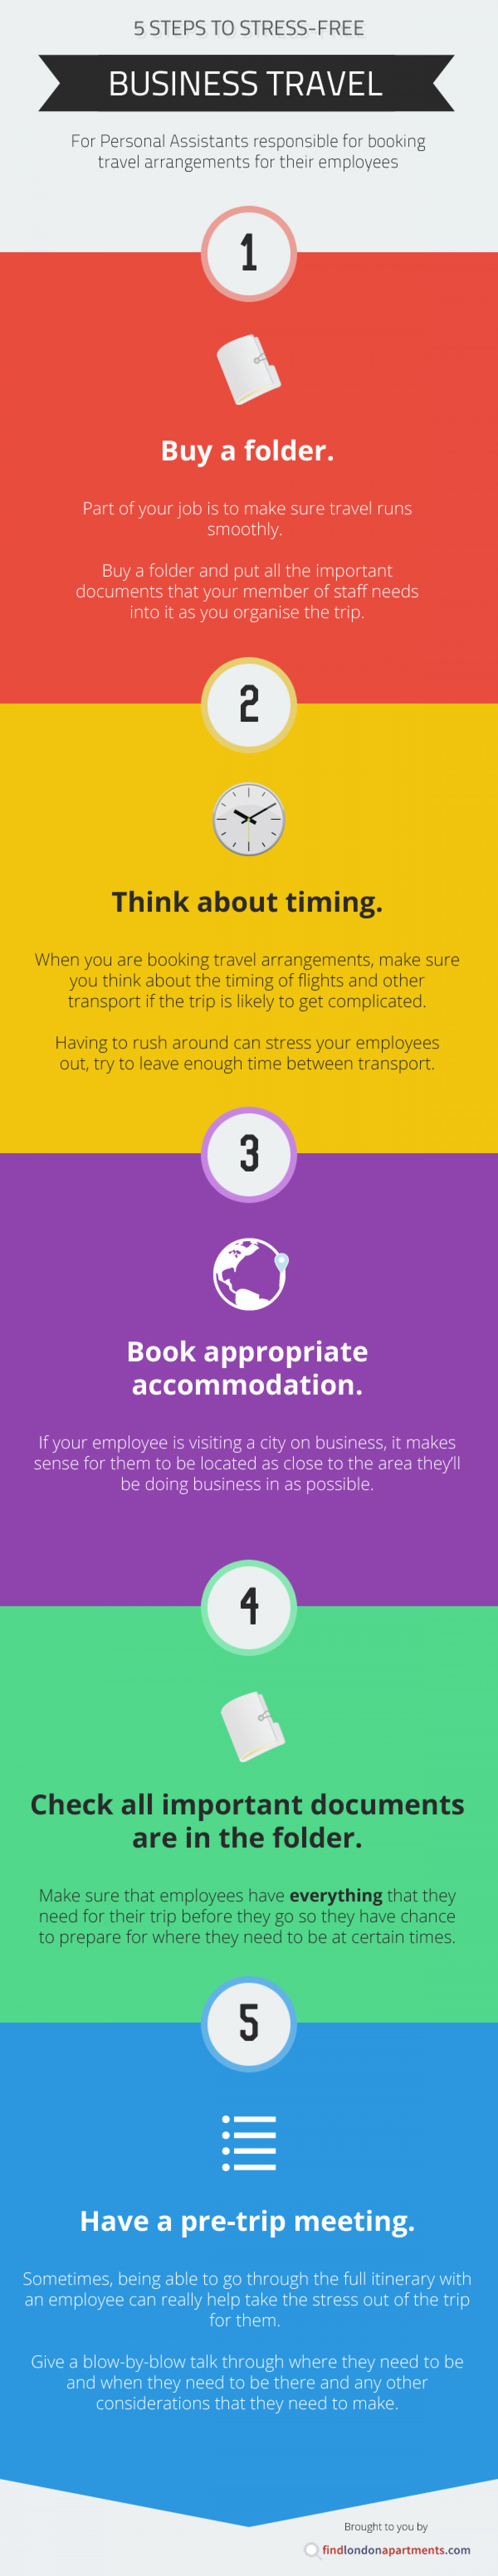 5 Steps To Stress-Free Business Travel Infographic